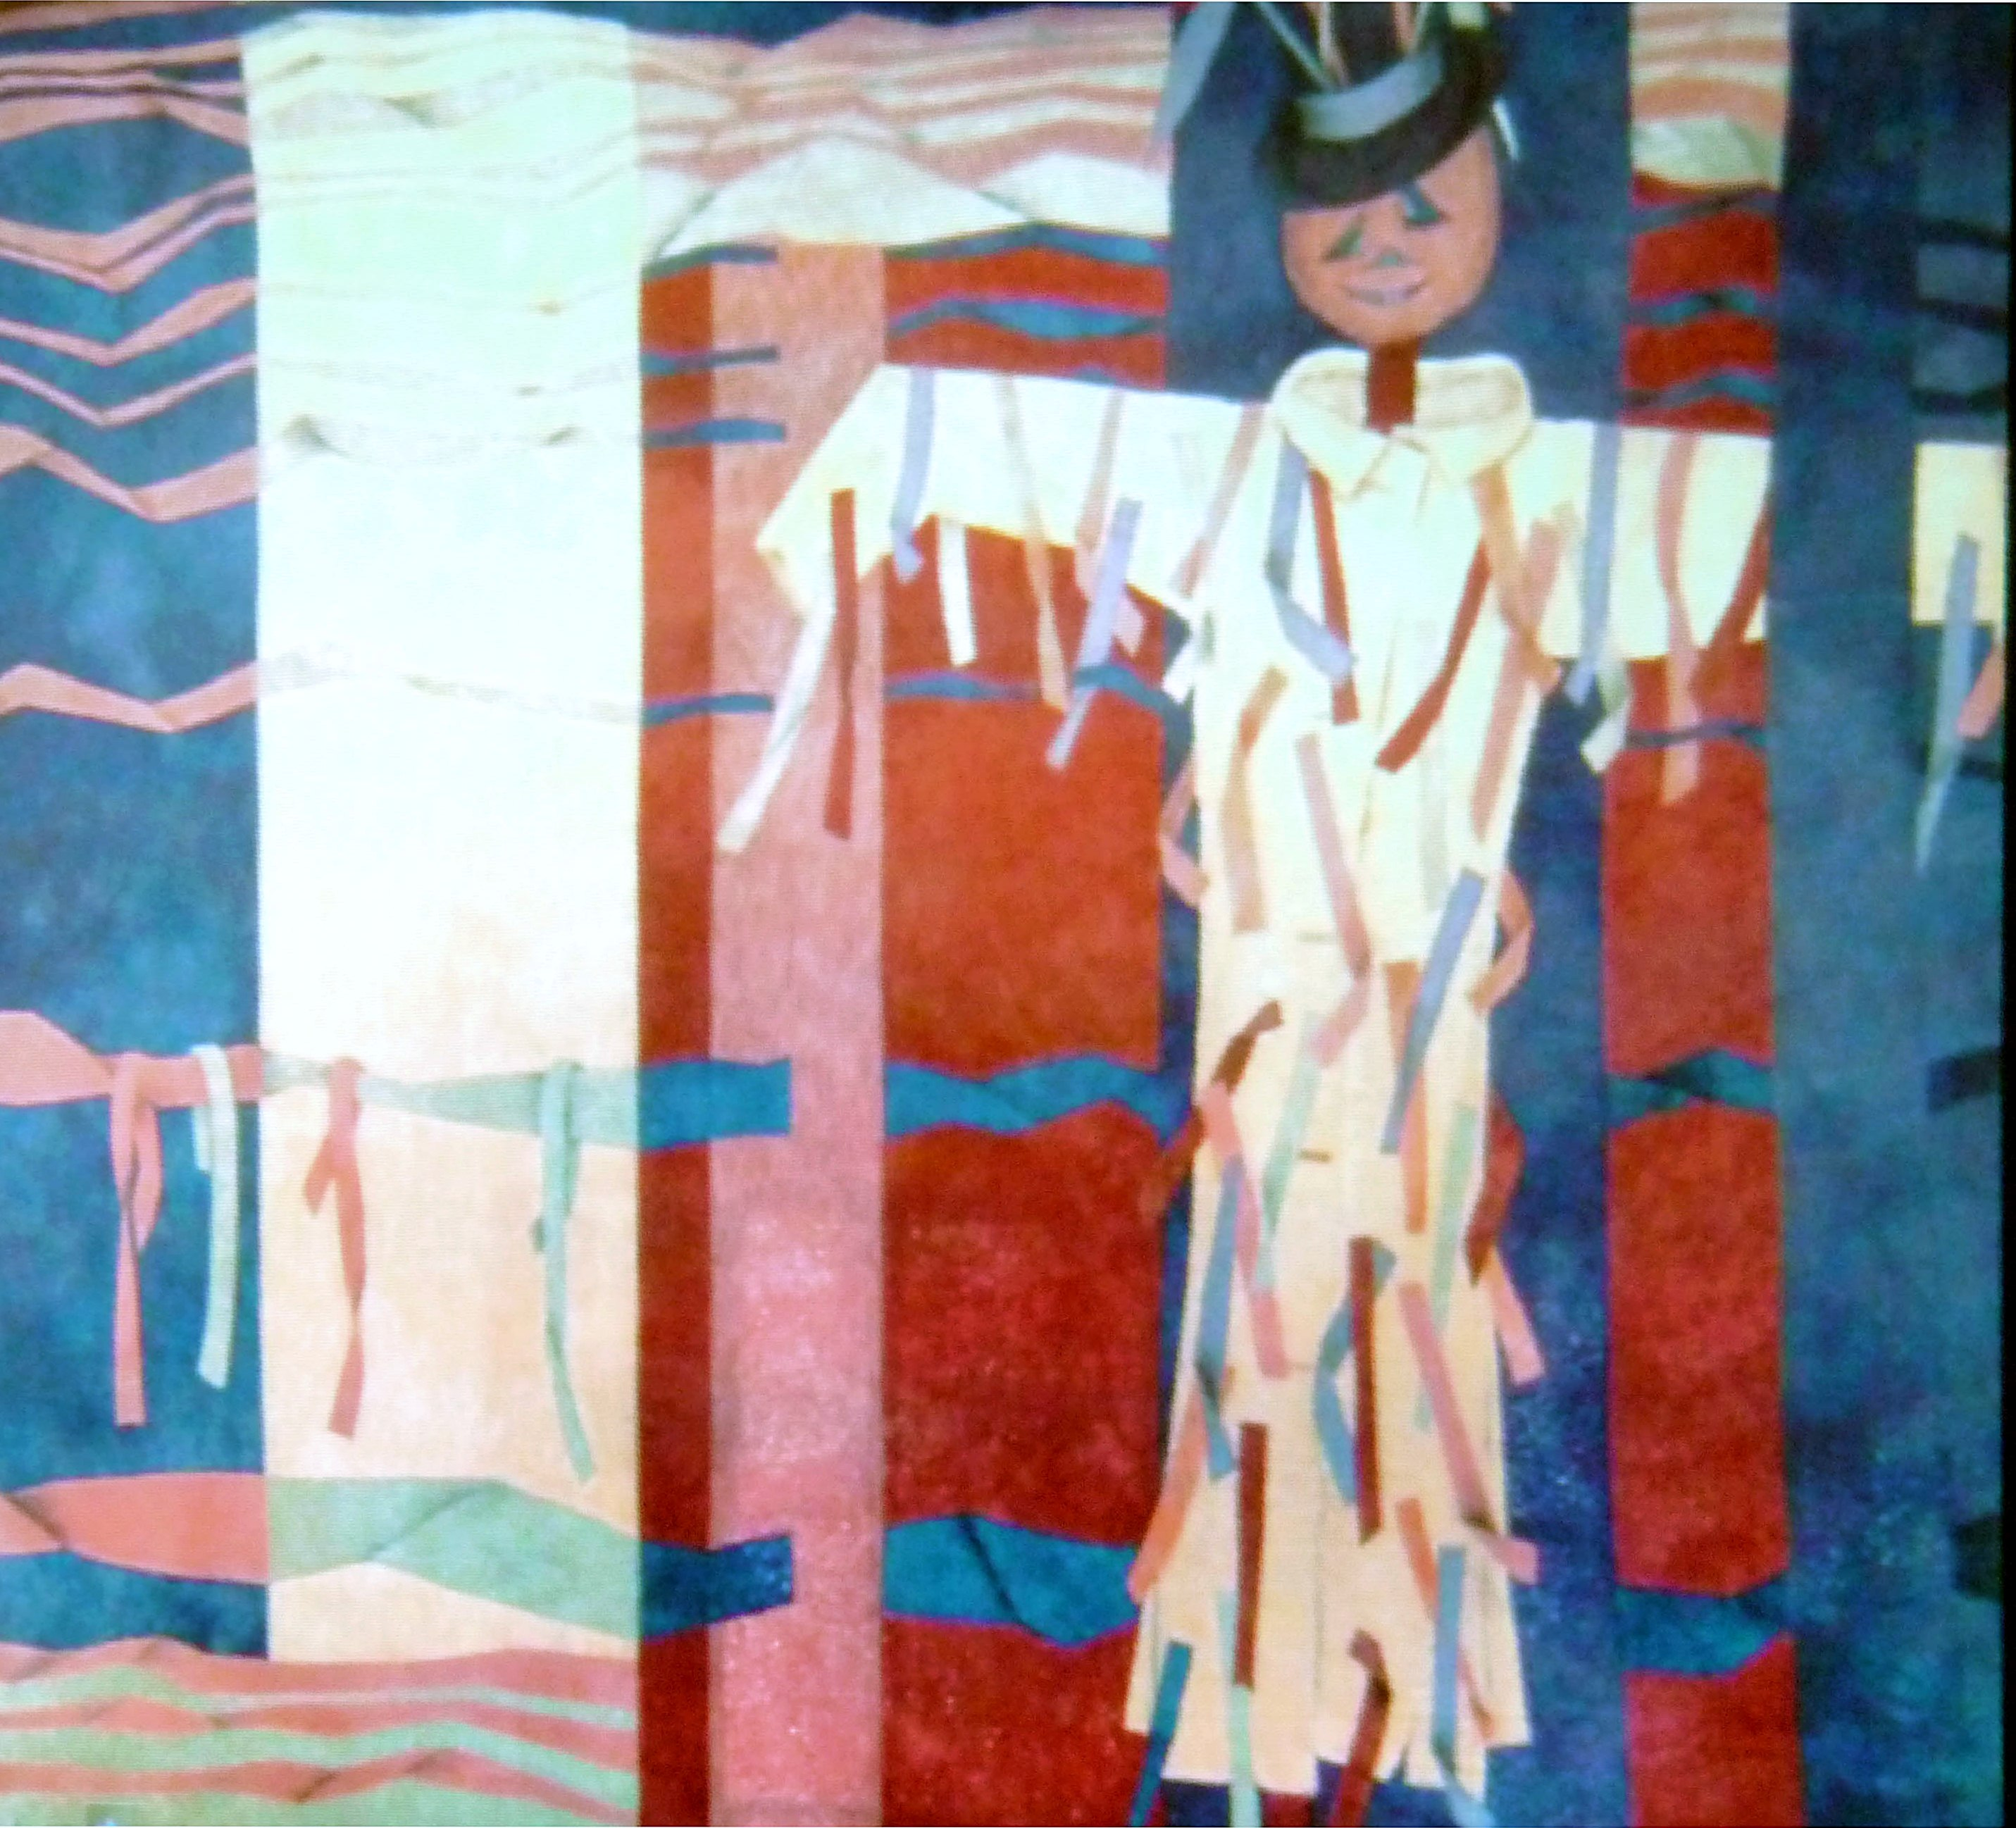 slide from Bobby Britnall of a quilt influenced by Morris dancers